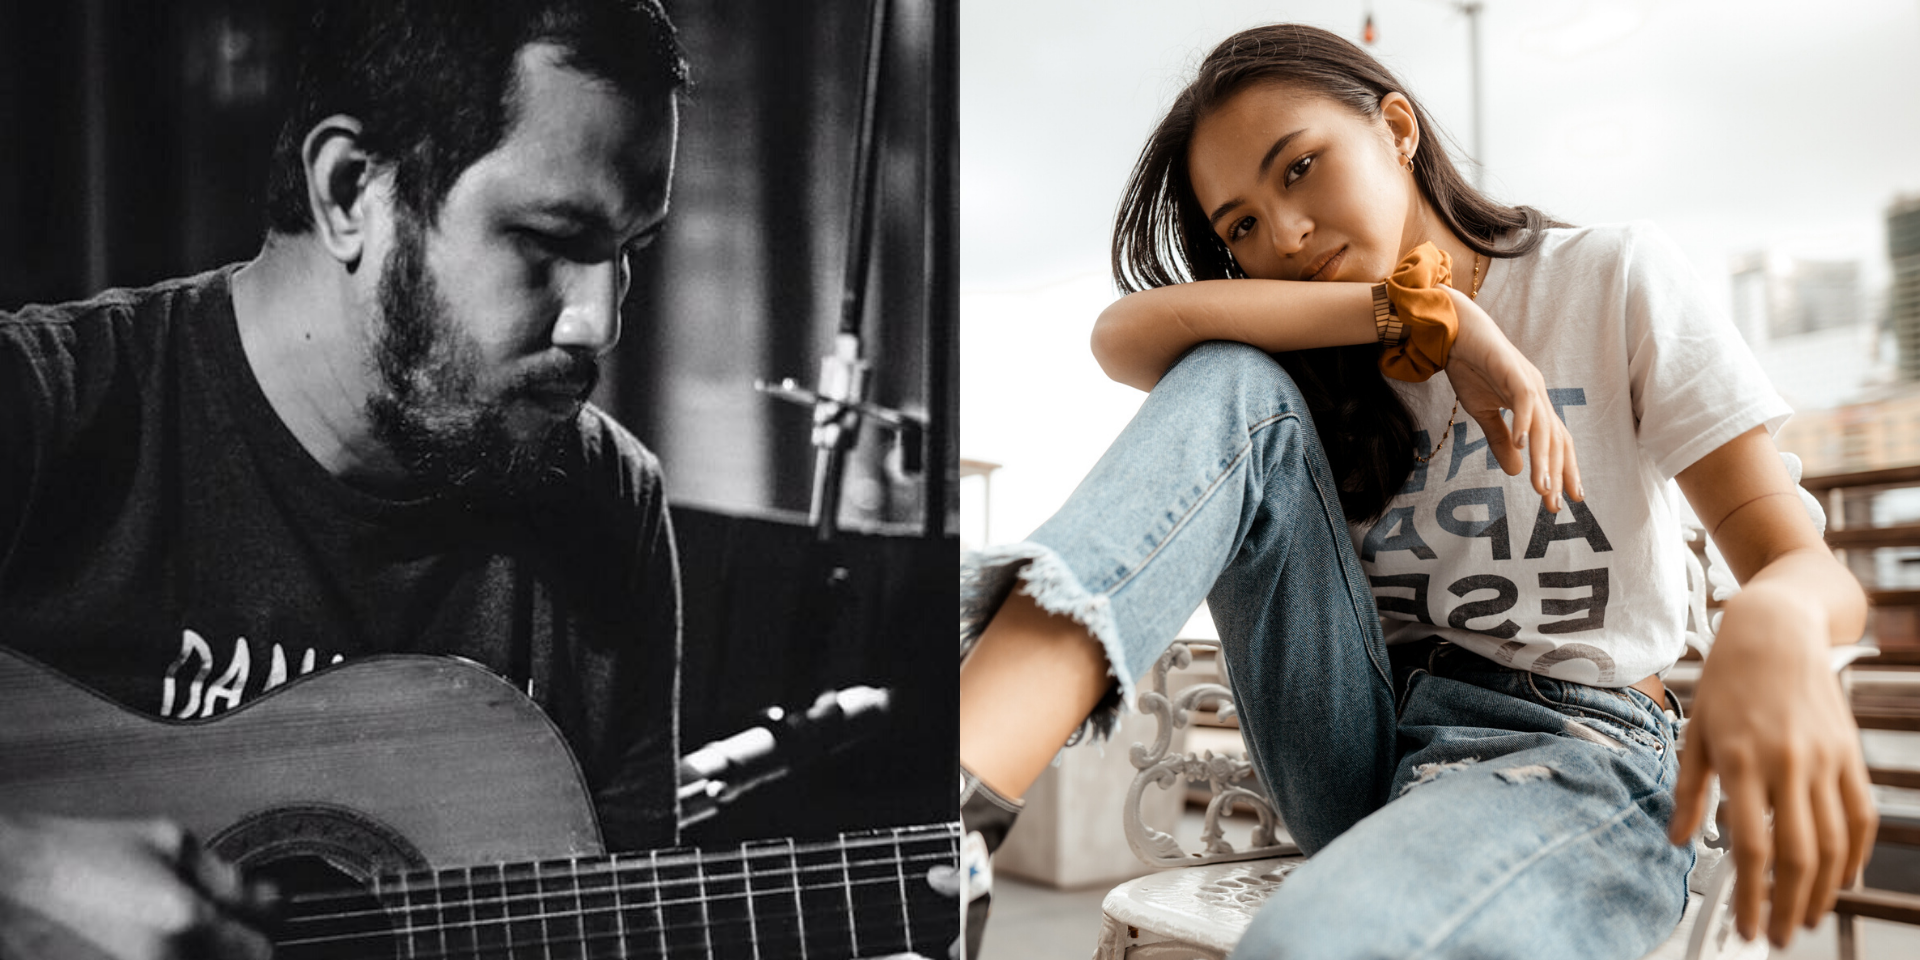 Johnoy Danao and Clara Benin team up for a special Valentine's show this weekend